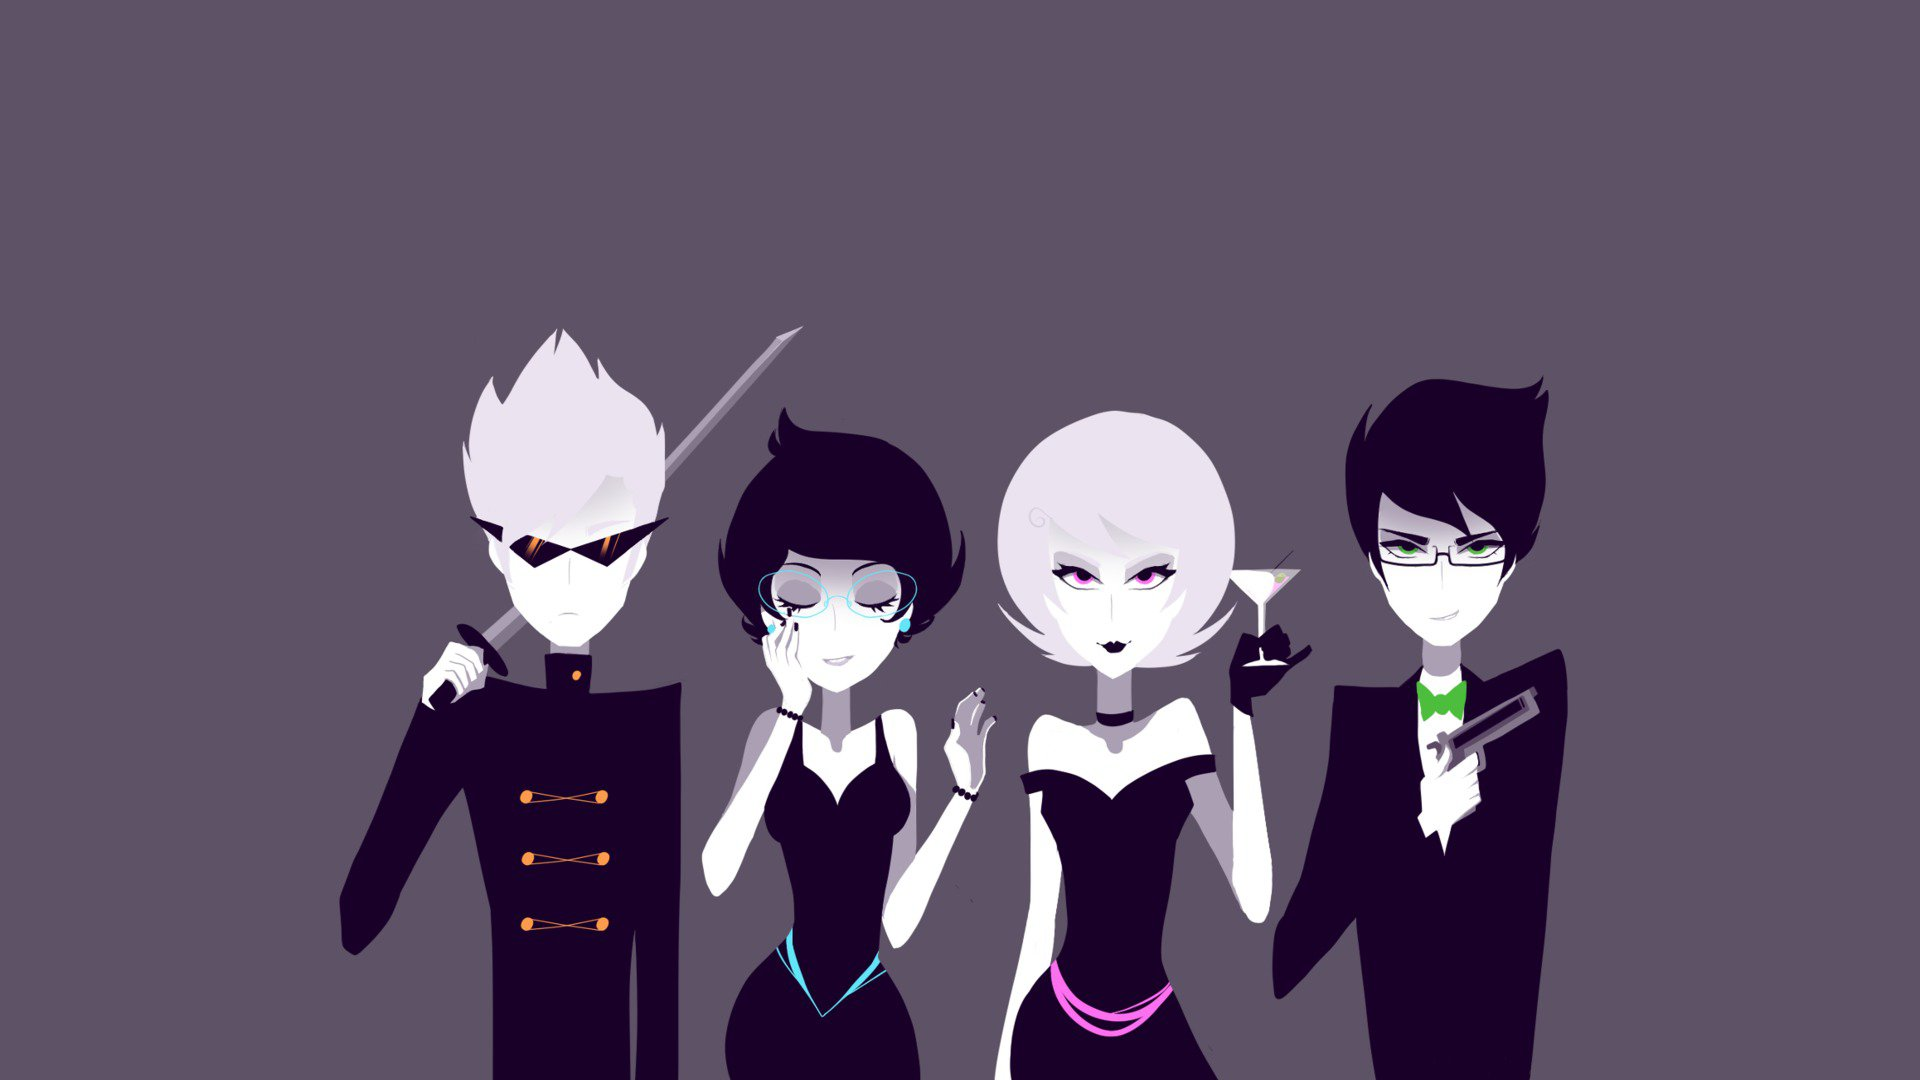 homestuck desktop wallpaper wallpapersafari